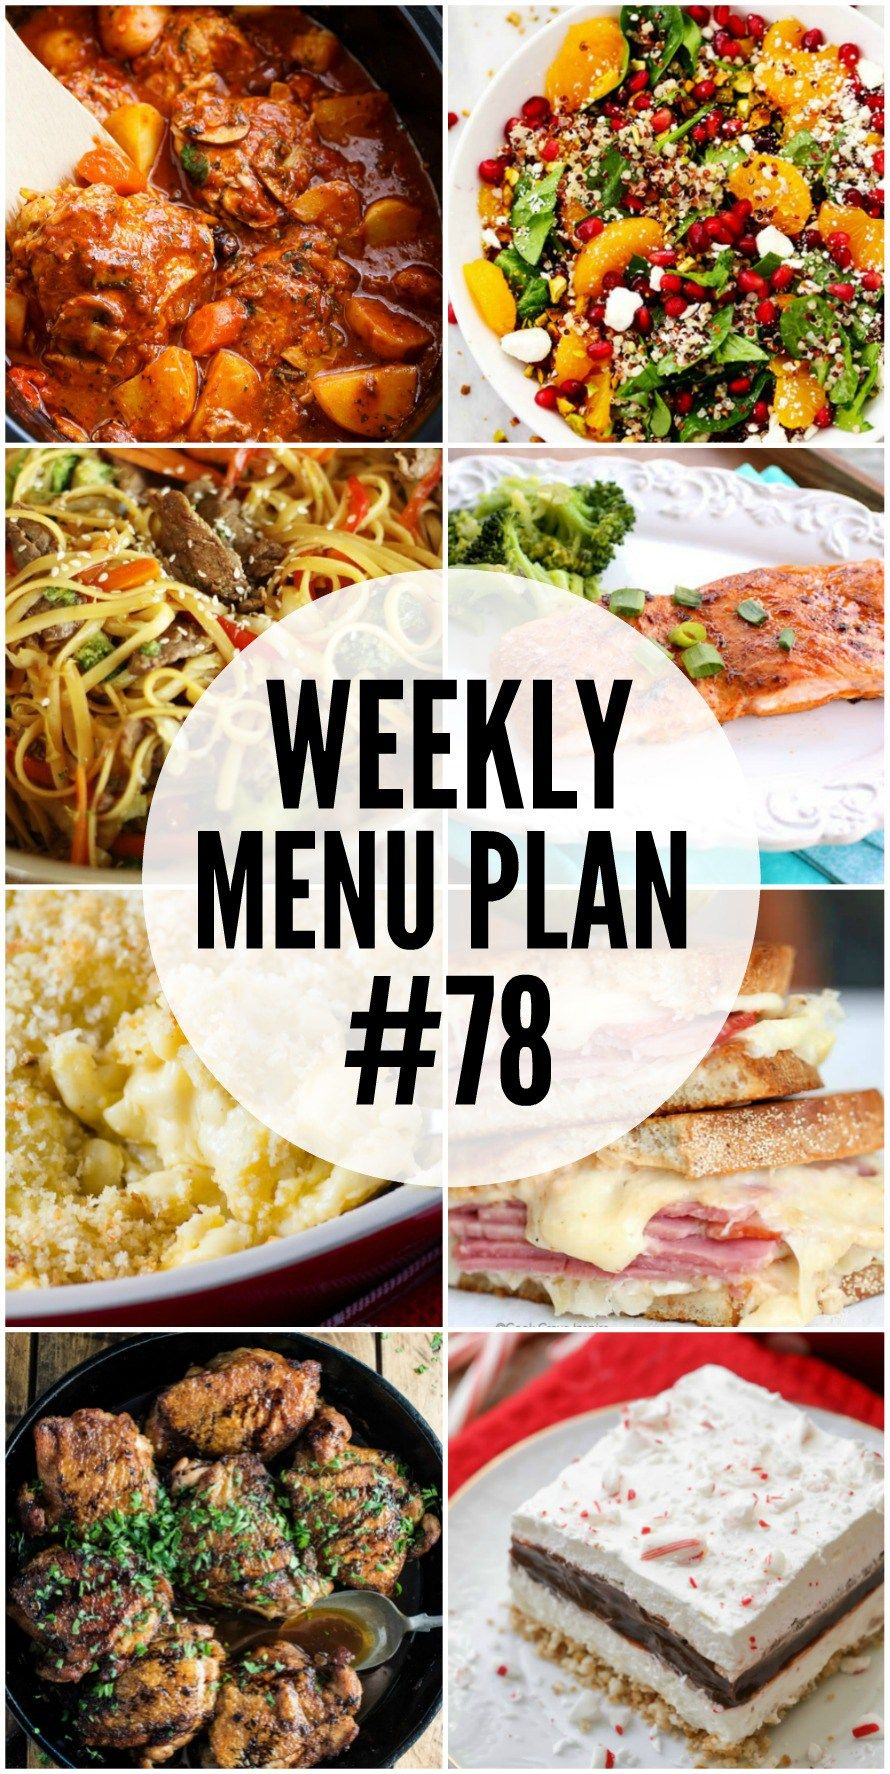 Make Planning Dinner Easier With Our New Easy Weeknight Meal Plan From eMeals